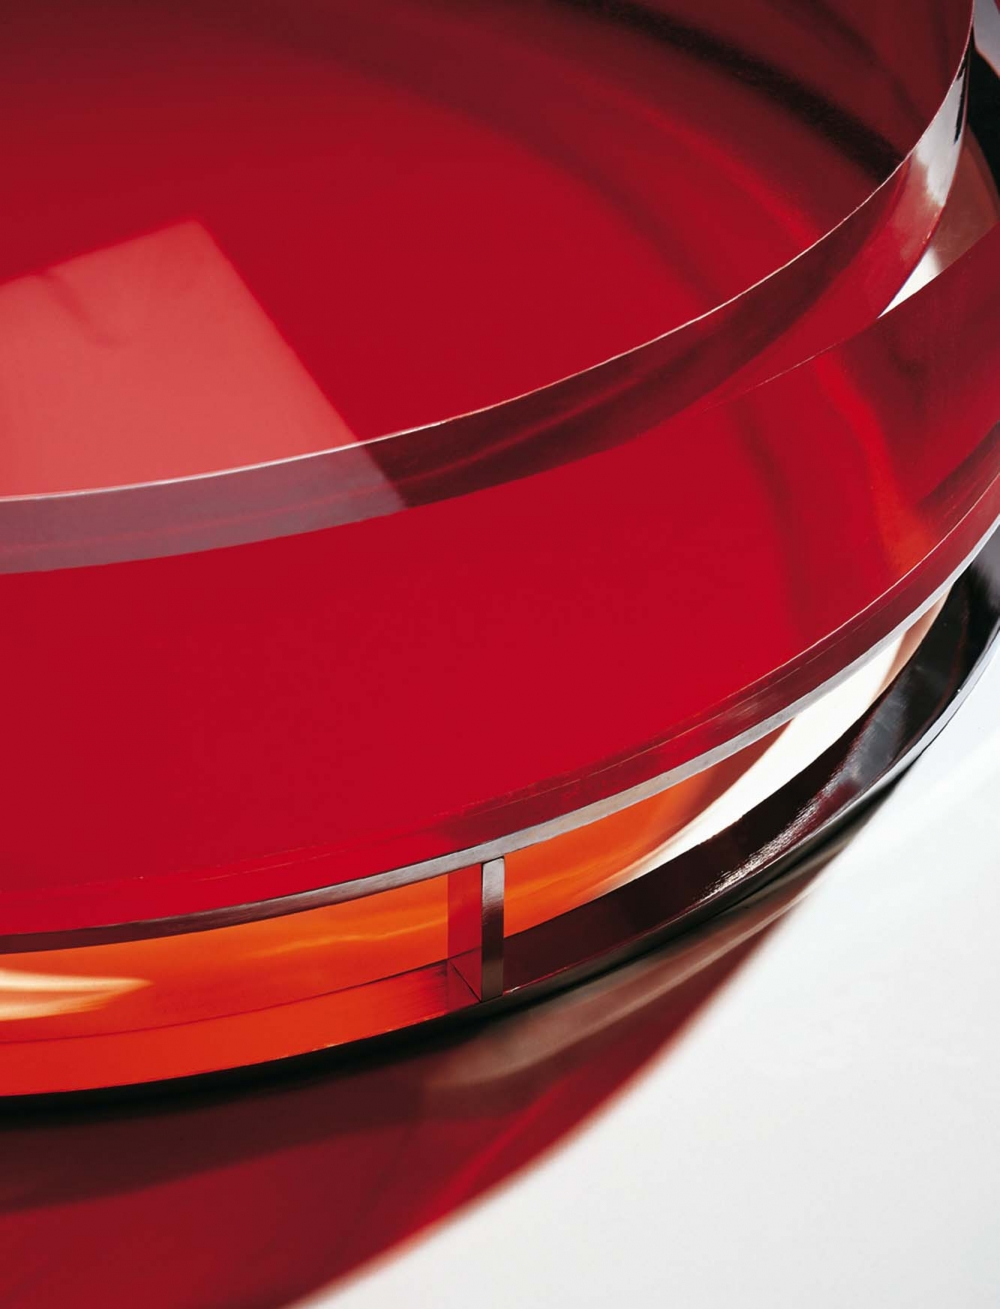 Furniture Design Table Pastille red close-up